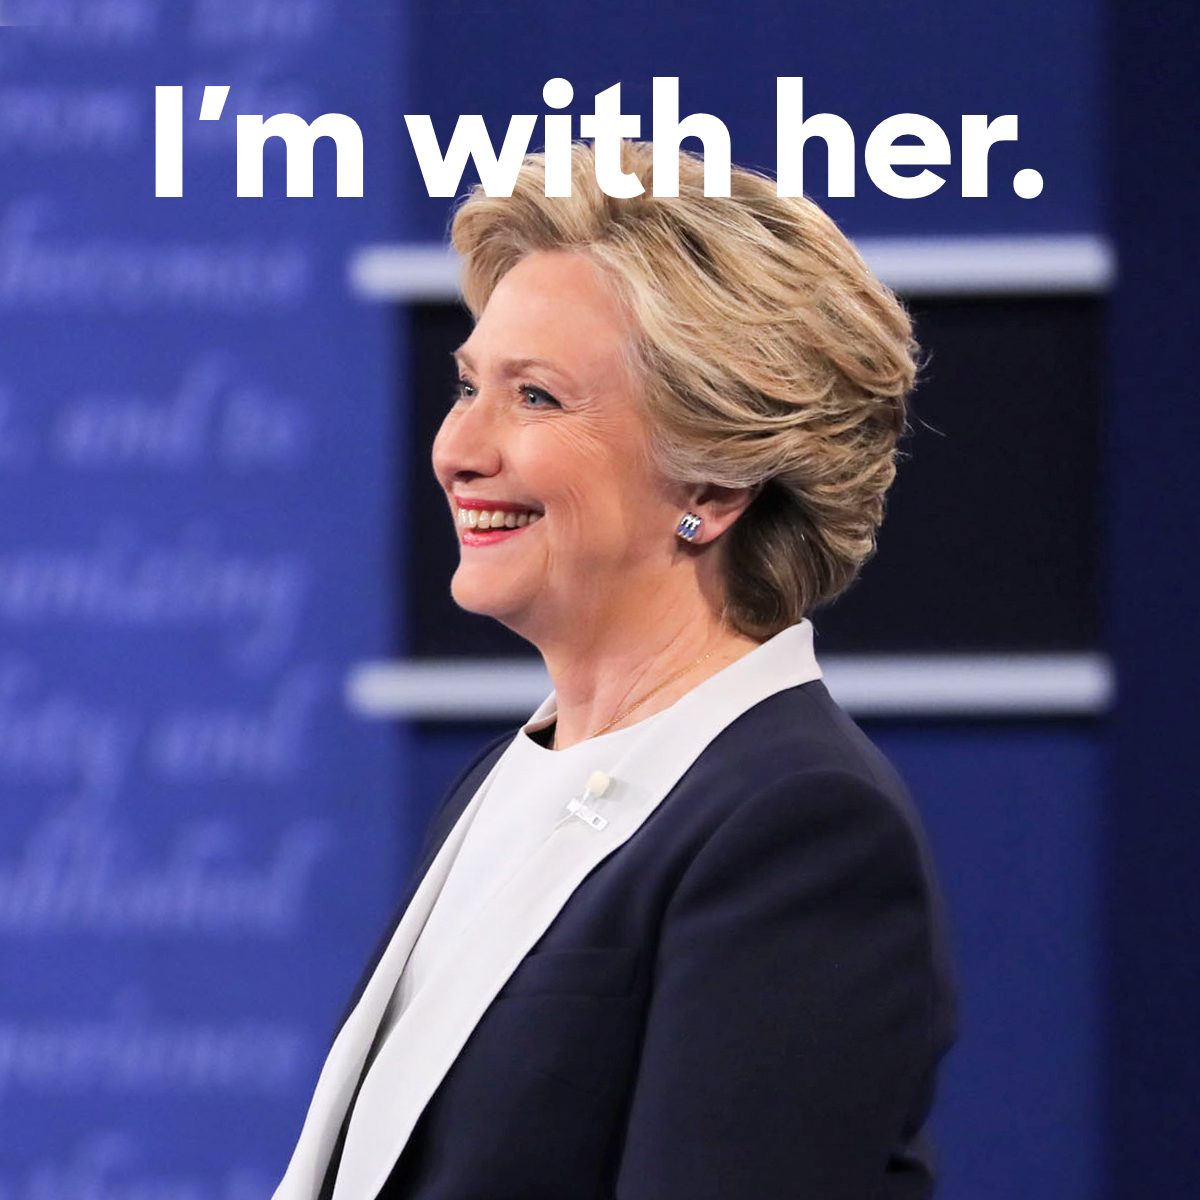 RT this if you're prouder than ever to be on Hillary's team. https://t.co/2m8BhIu29H #DebateNight